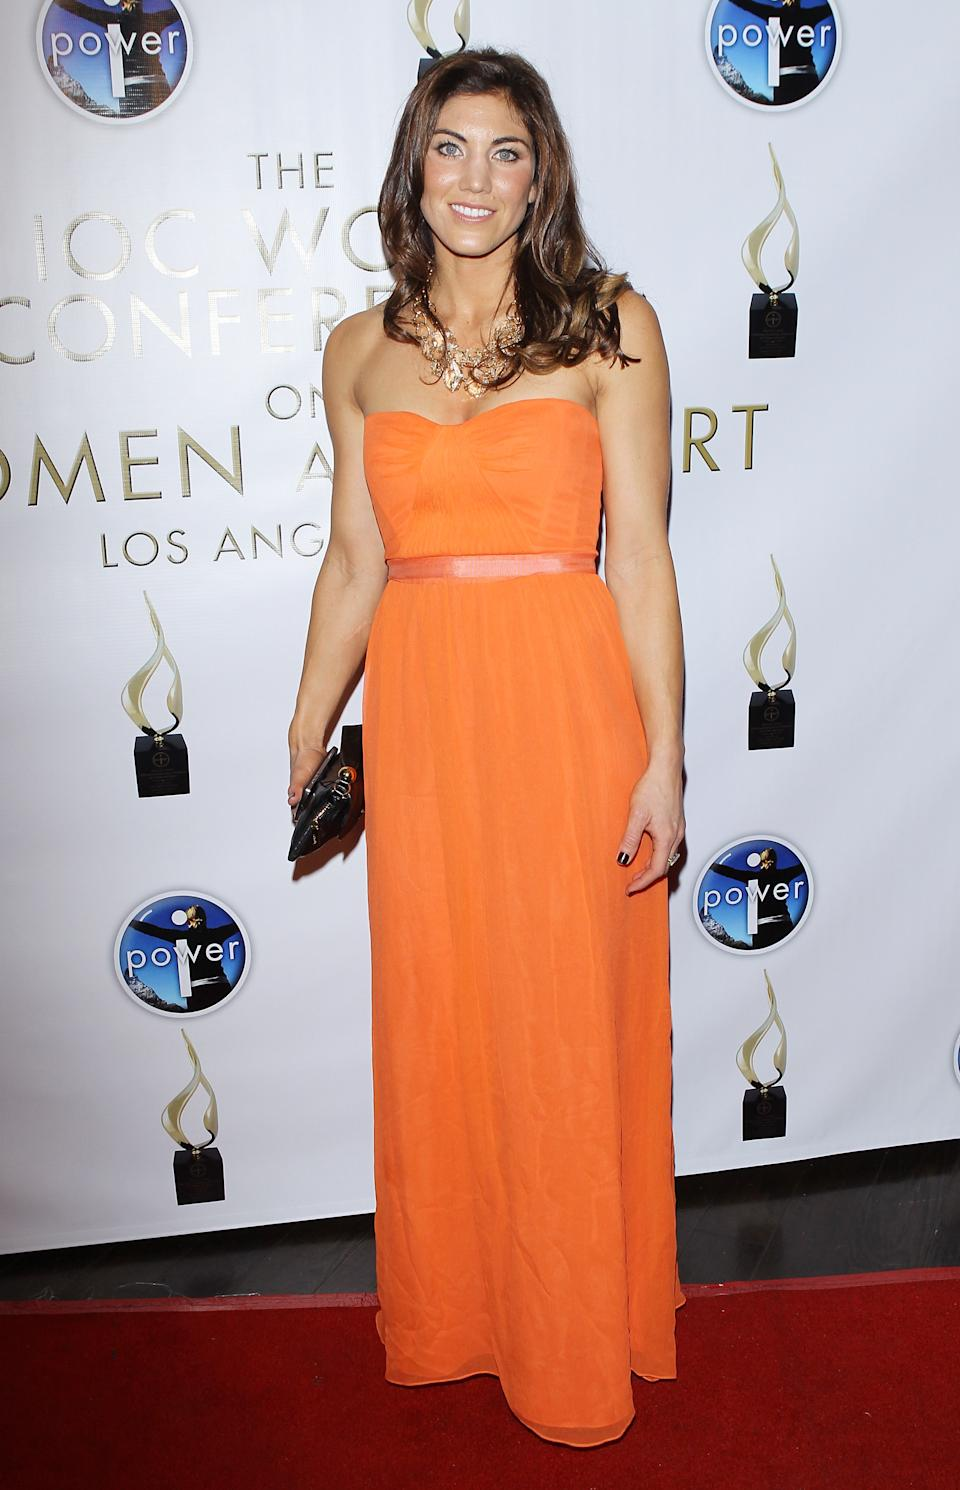 Hope Solo arrives at the Power Of I: Celebrating Women And Sport gala dinner at The International Olympic Committee - 5th World Conference On Women And Sport held at The Conga Room at L.A. Live on February 17, 2012 in Los Angeles, California. (Photo by Michael Tran/FilmMagic)